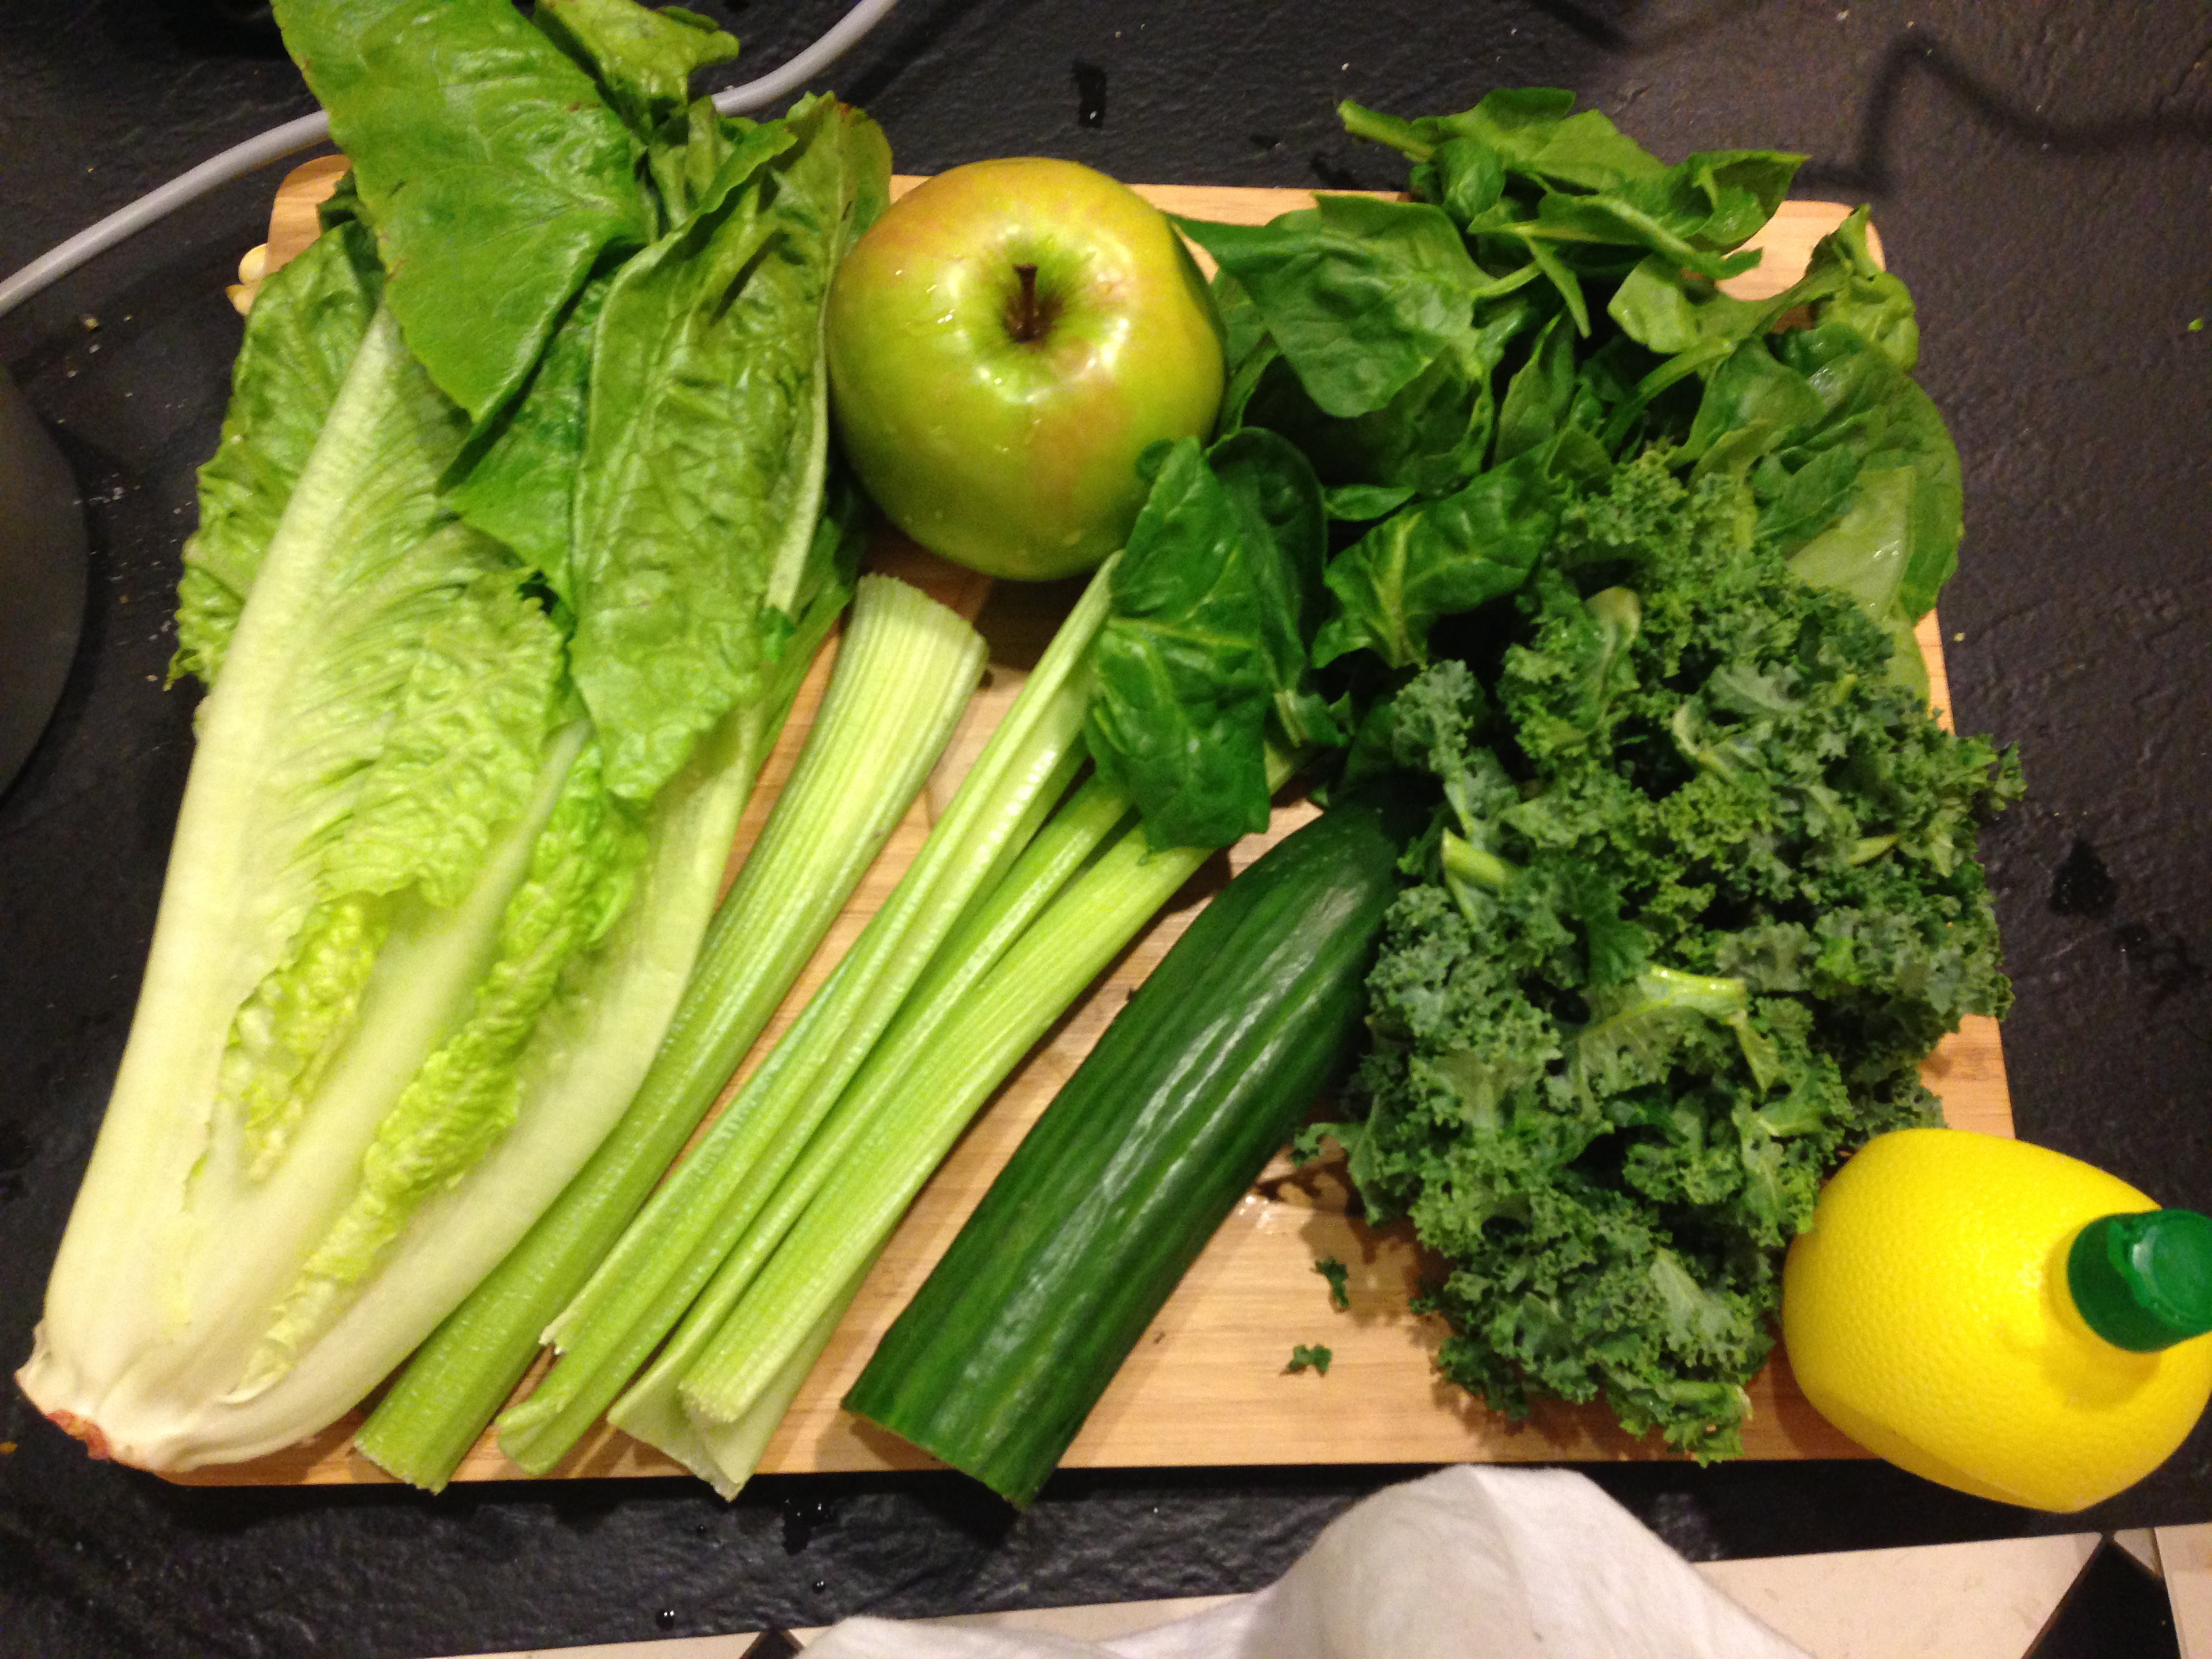 Meet the juices how to do your very own diy blueprintcleanse img2471 green juice malvernweather Choice Image